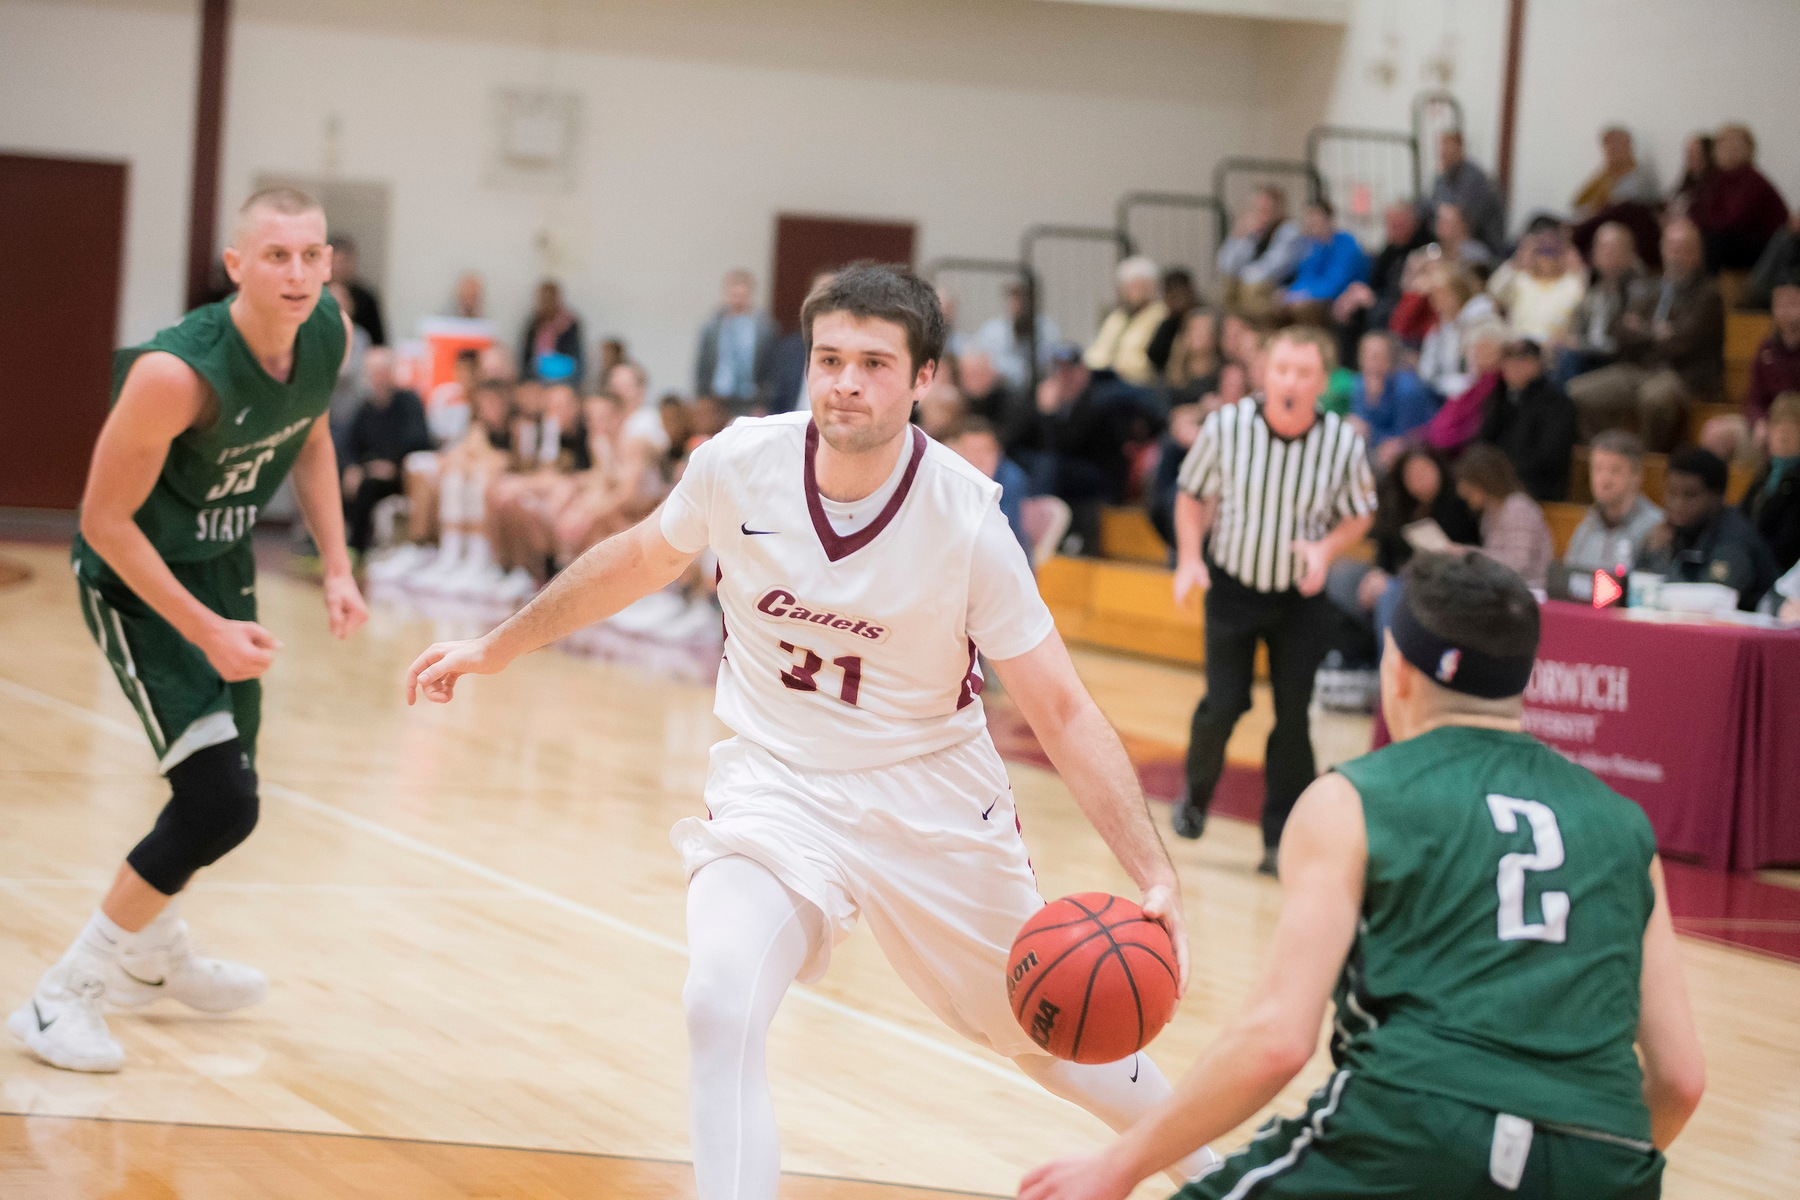 Men's Basketball: Suffolk runs away with 74-59 victory over Cadets